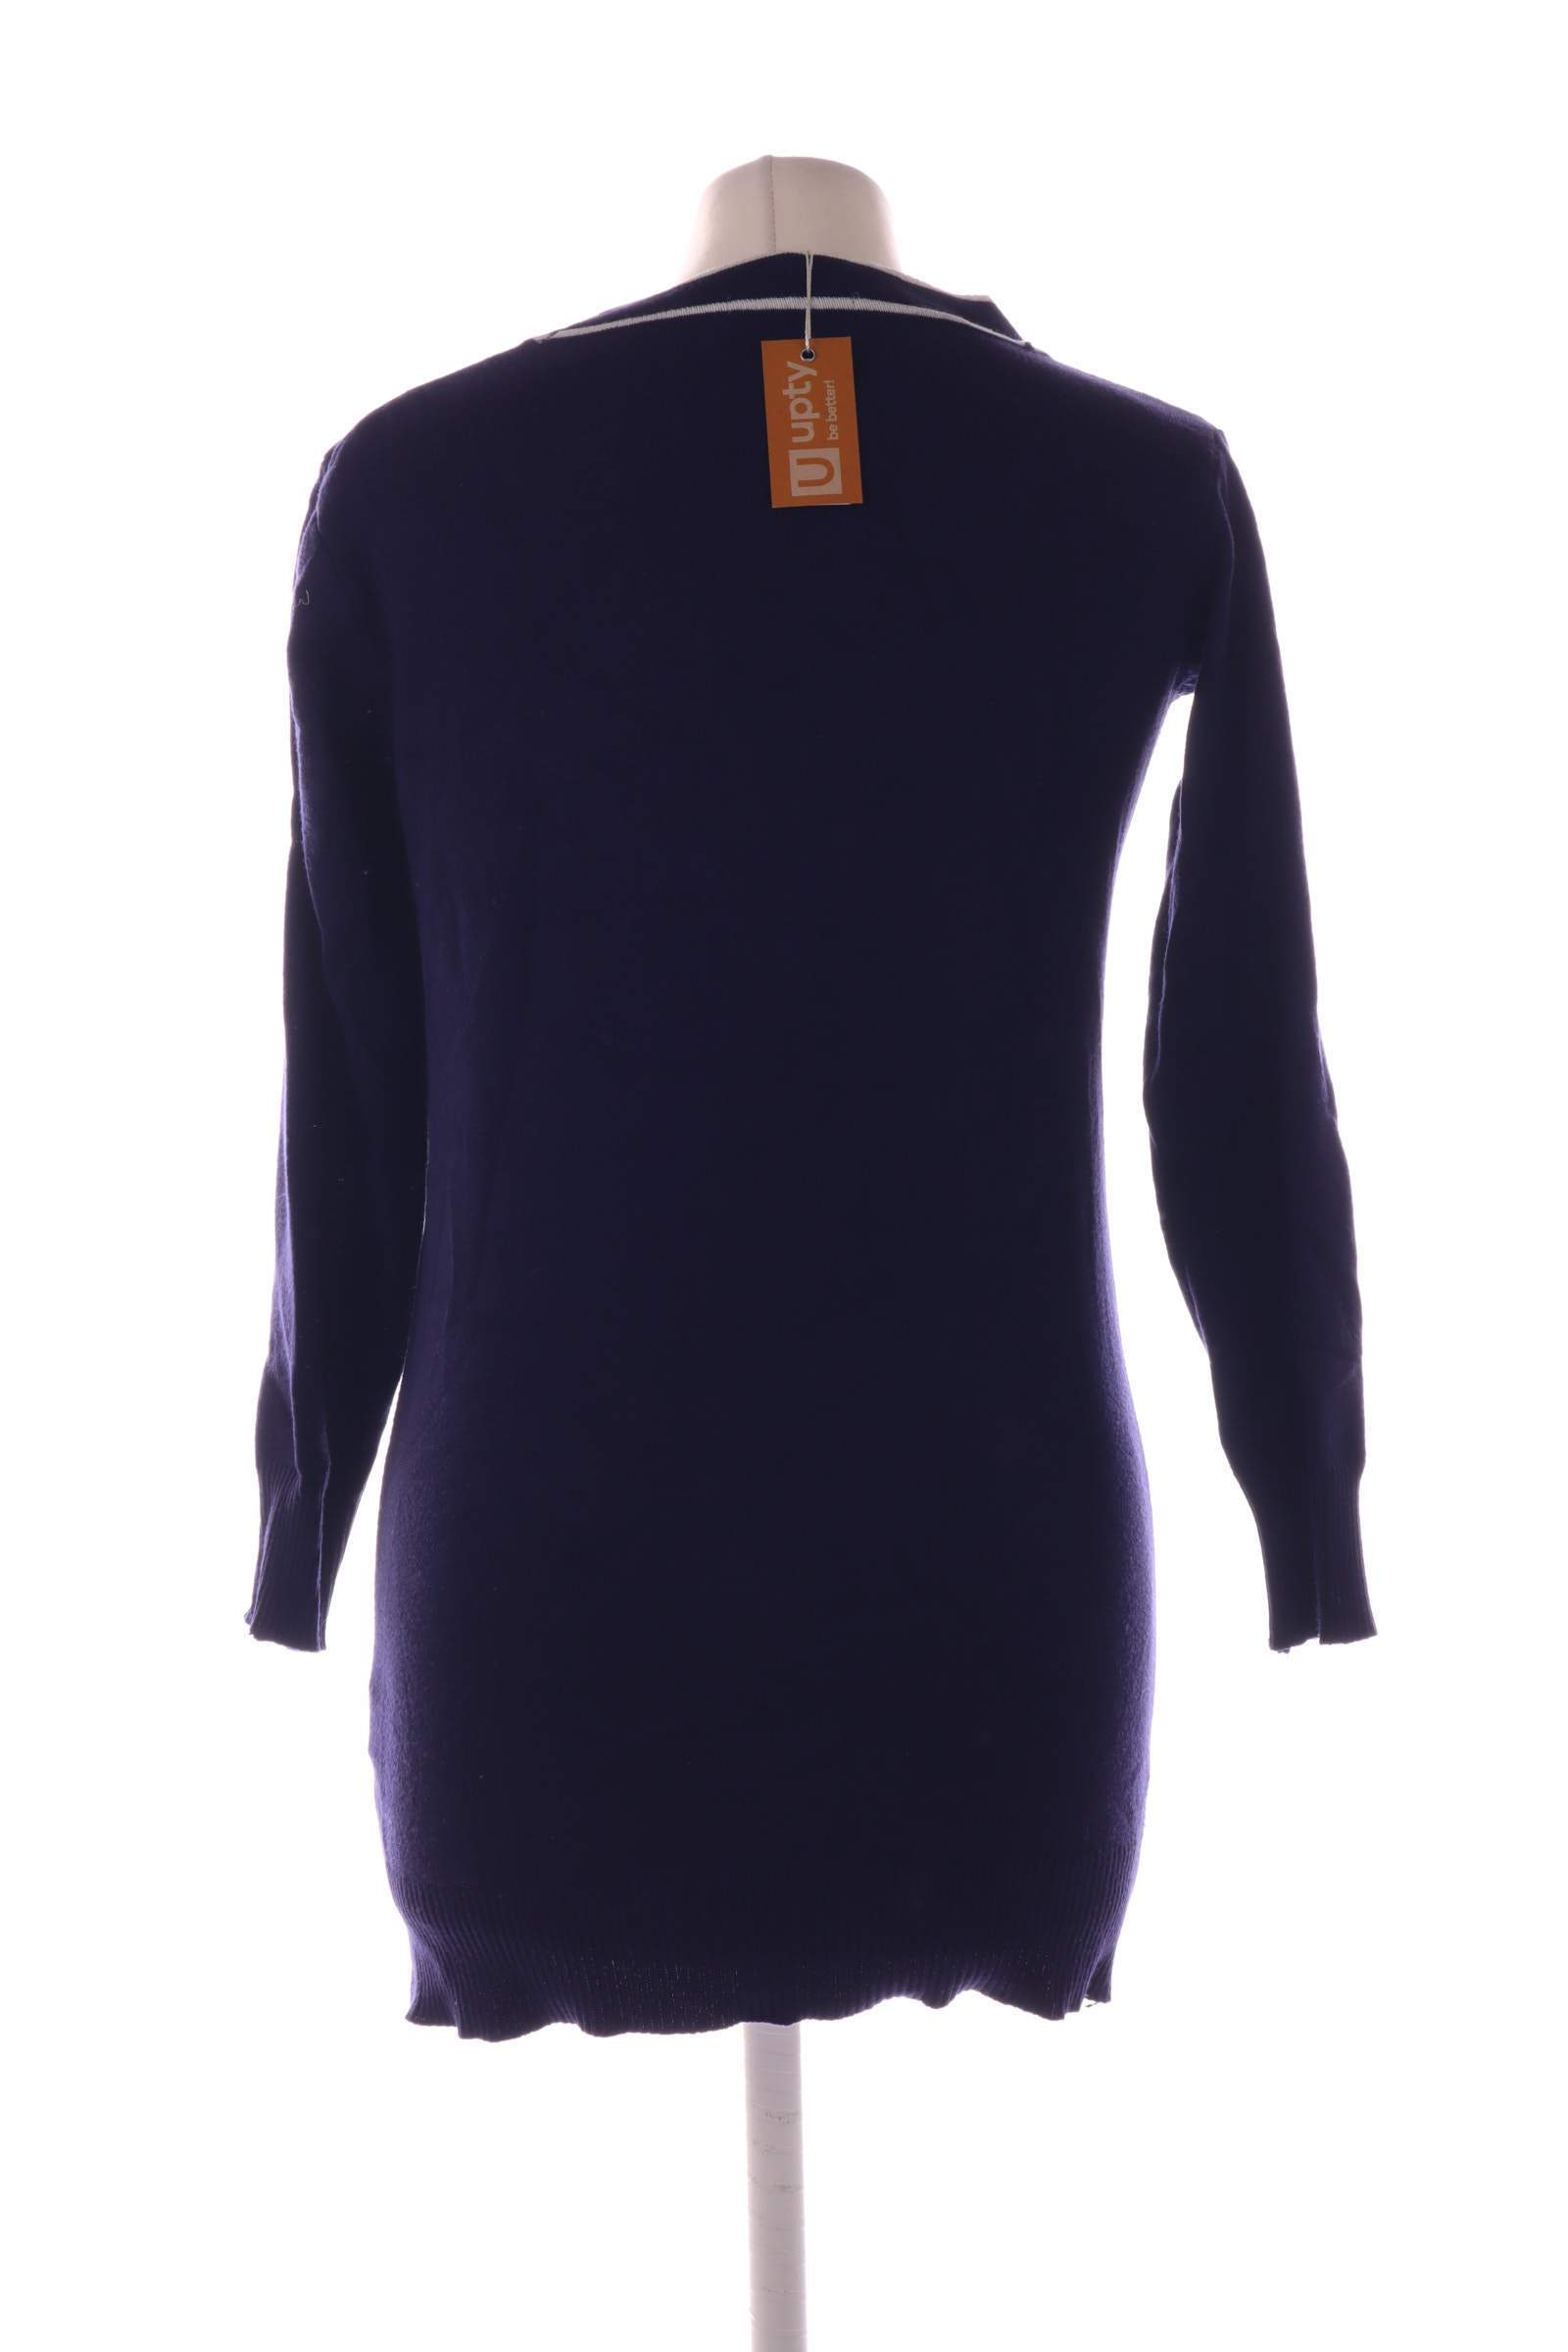 Dinamit Golden Blue Sweater - upty.store